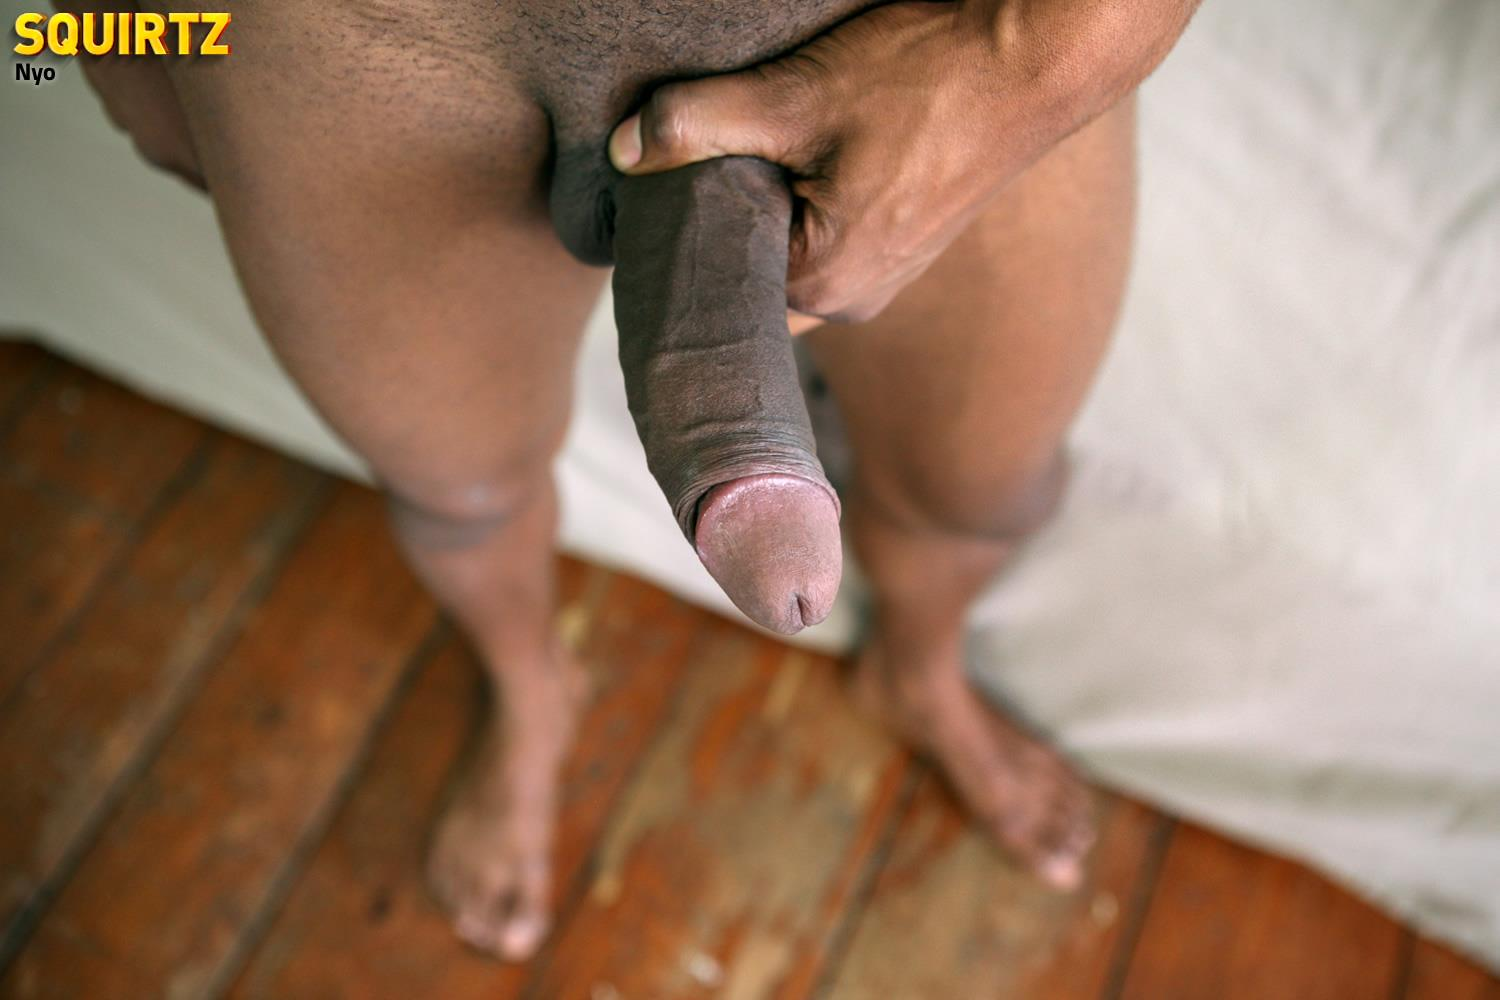 Squirtz Nyo Big Uncut Black Cock Jerking Off Cum Shot Amateur Gay Porn 23 Young Black Guy Jerking His Massive Uncut Black Cock